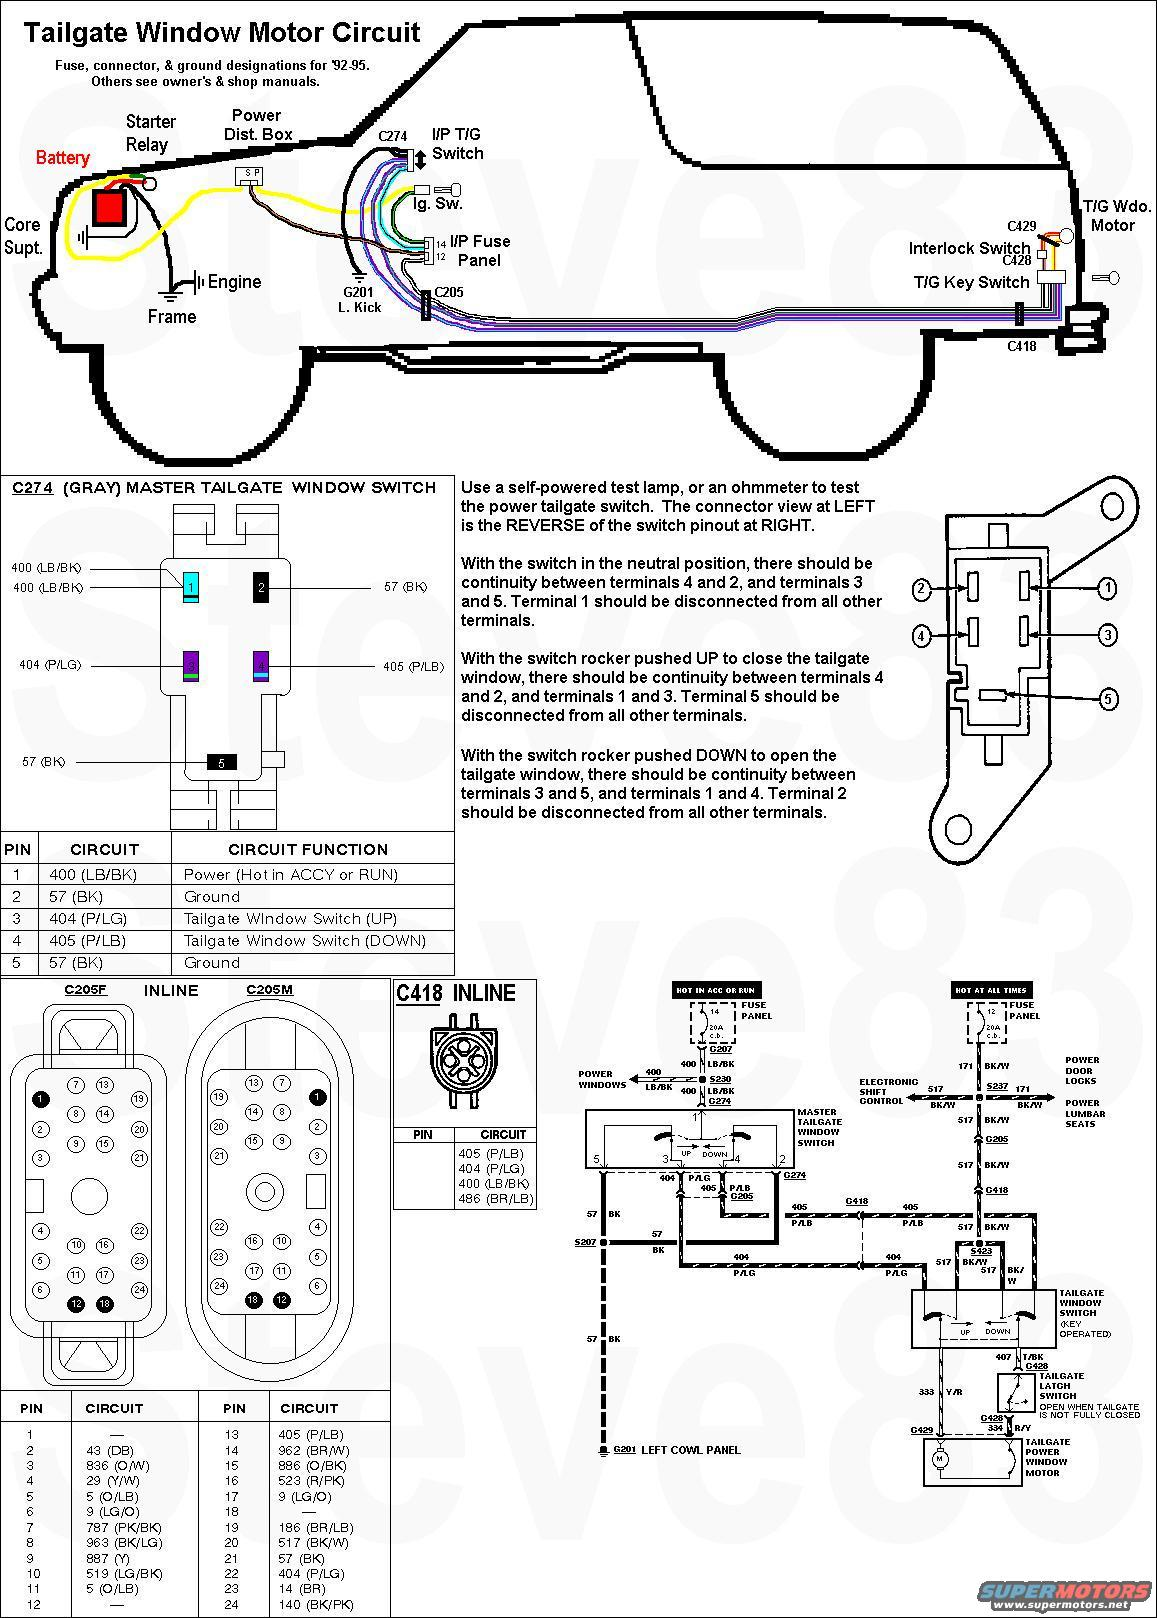 wmtgmotorwiring wiring diagram 1975 ford bronco the wiring diagram readingrat net 1979 bronco fuse box diagram at sewacar.co